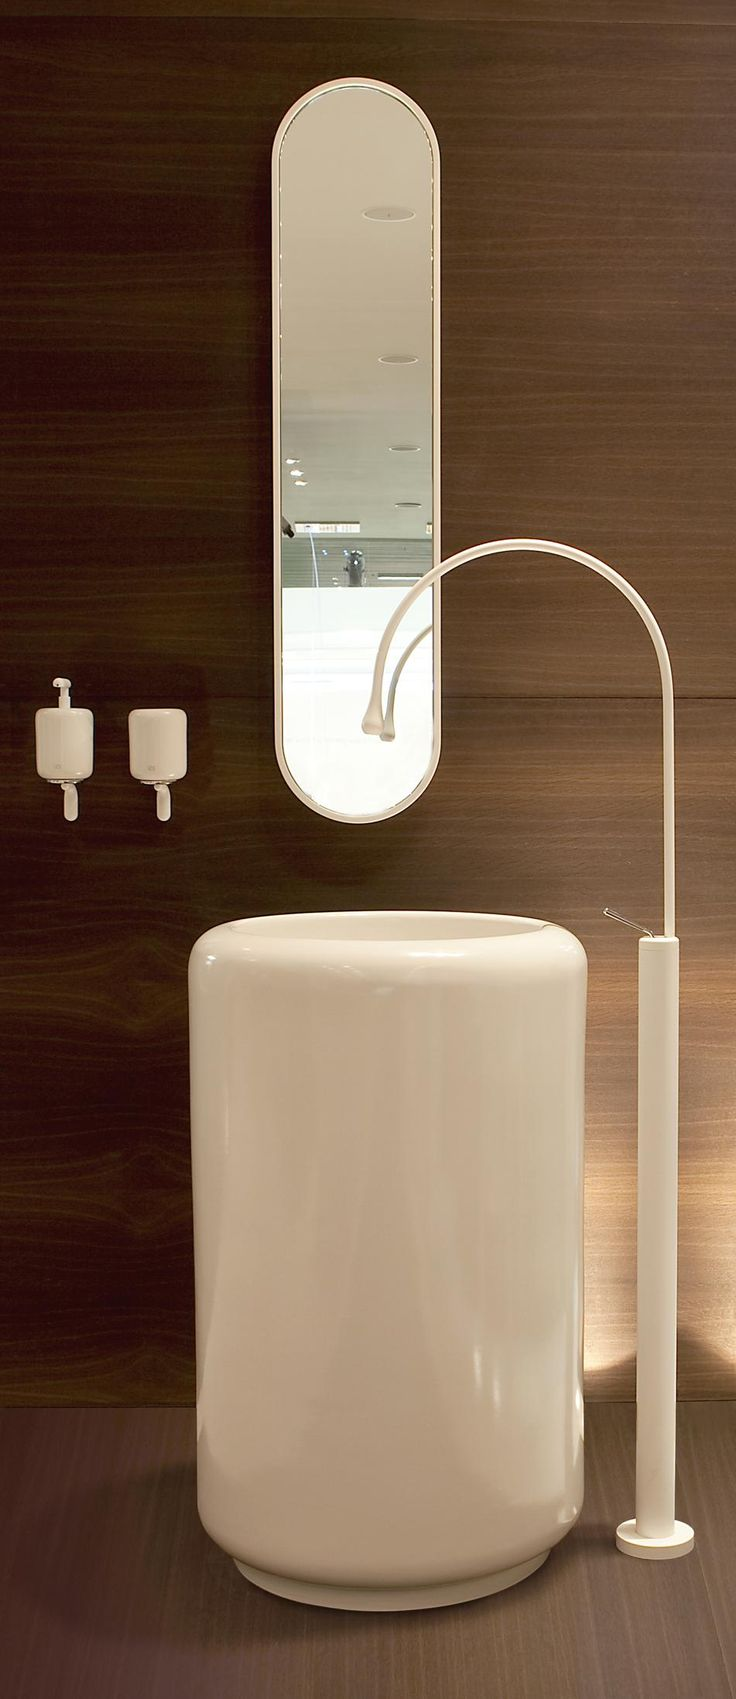 Gessi Goccia Pedestal Sink and Floor-Mount Faucet